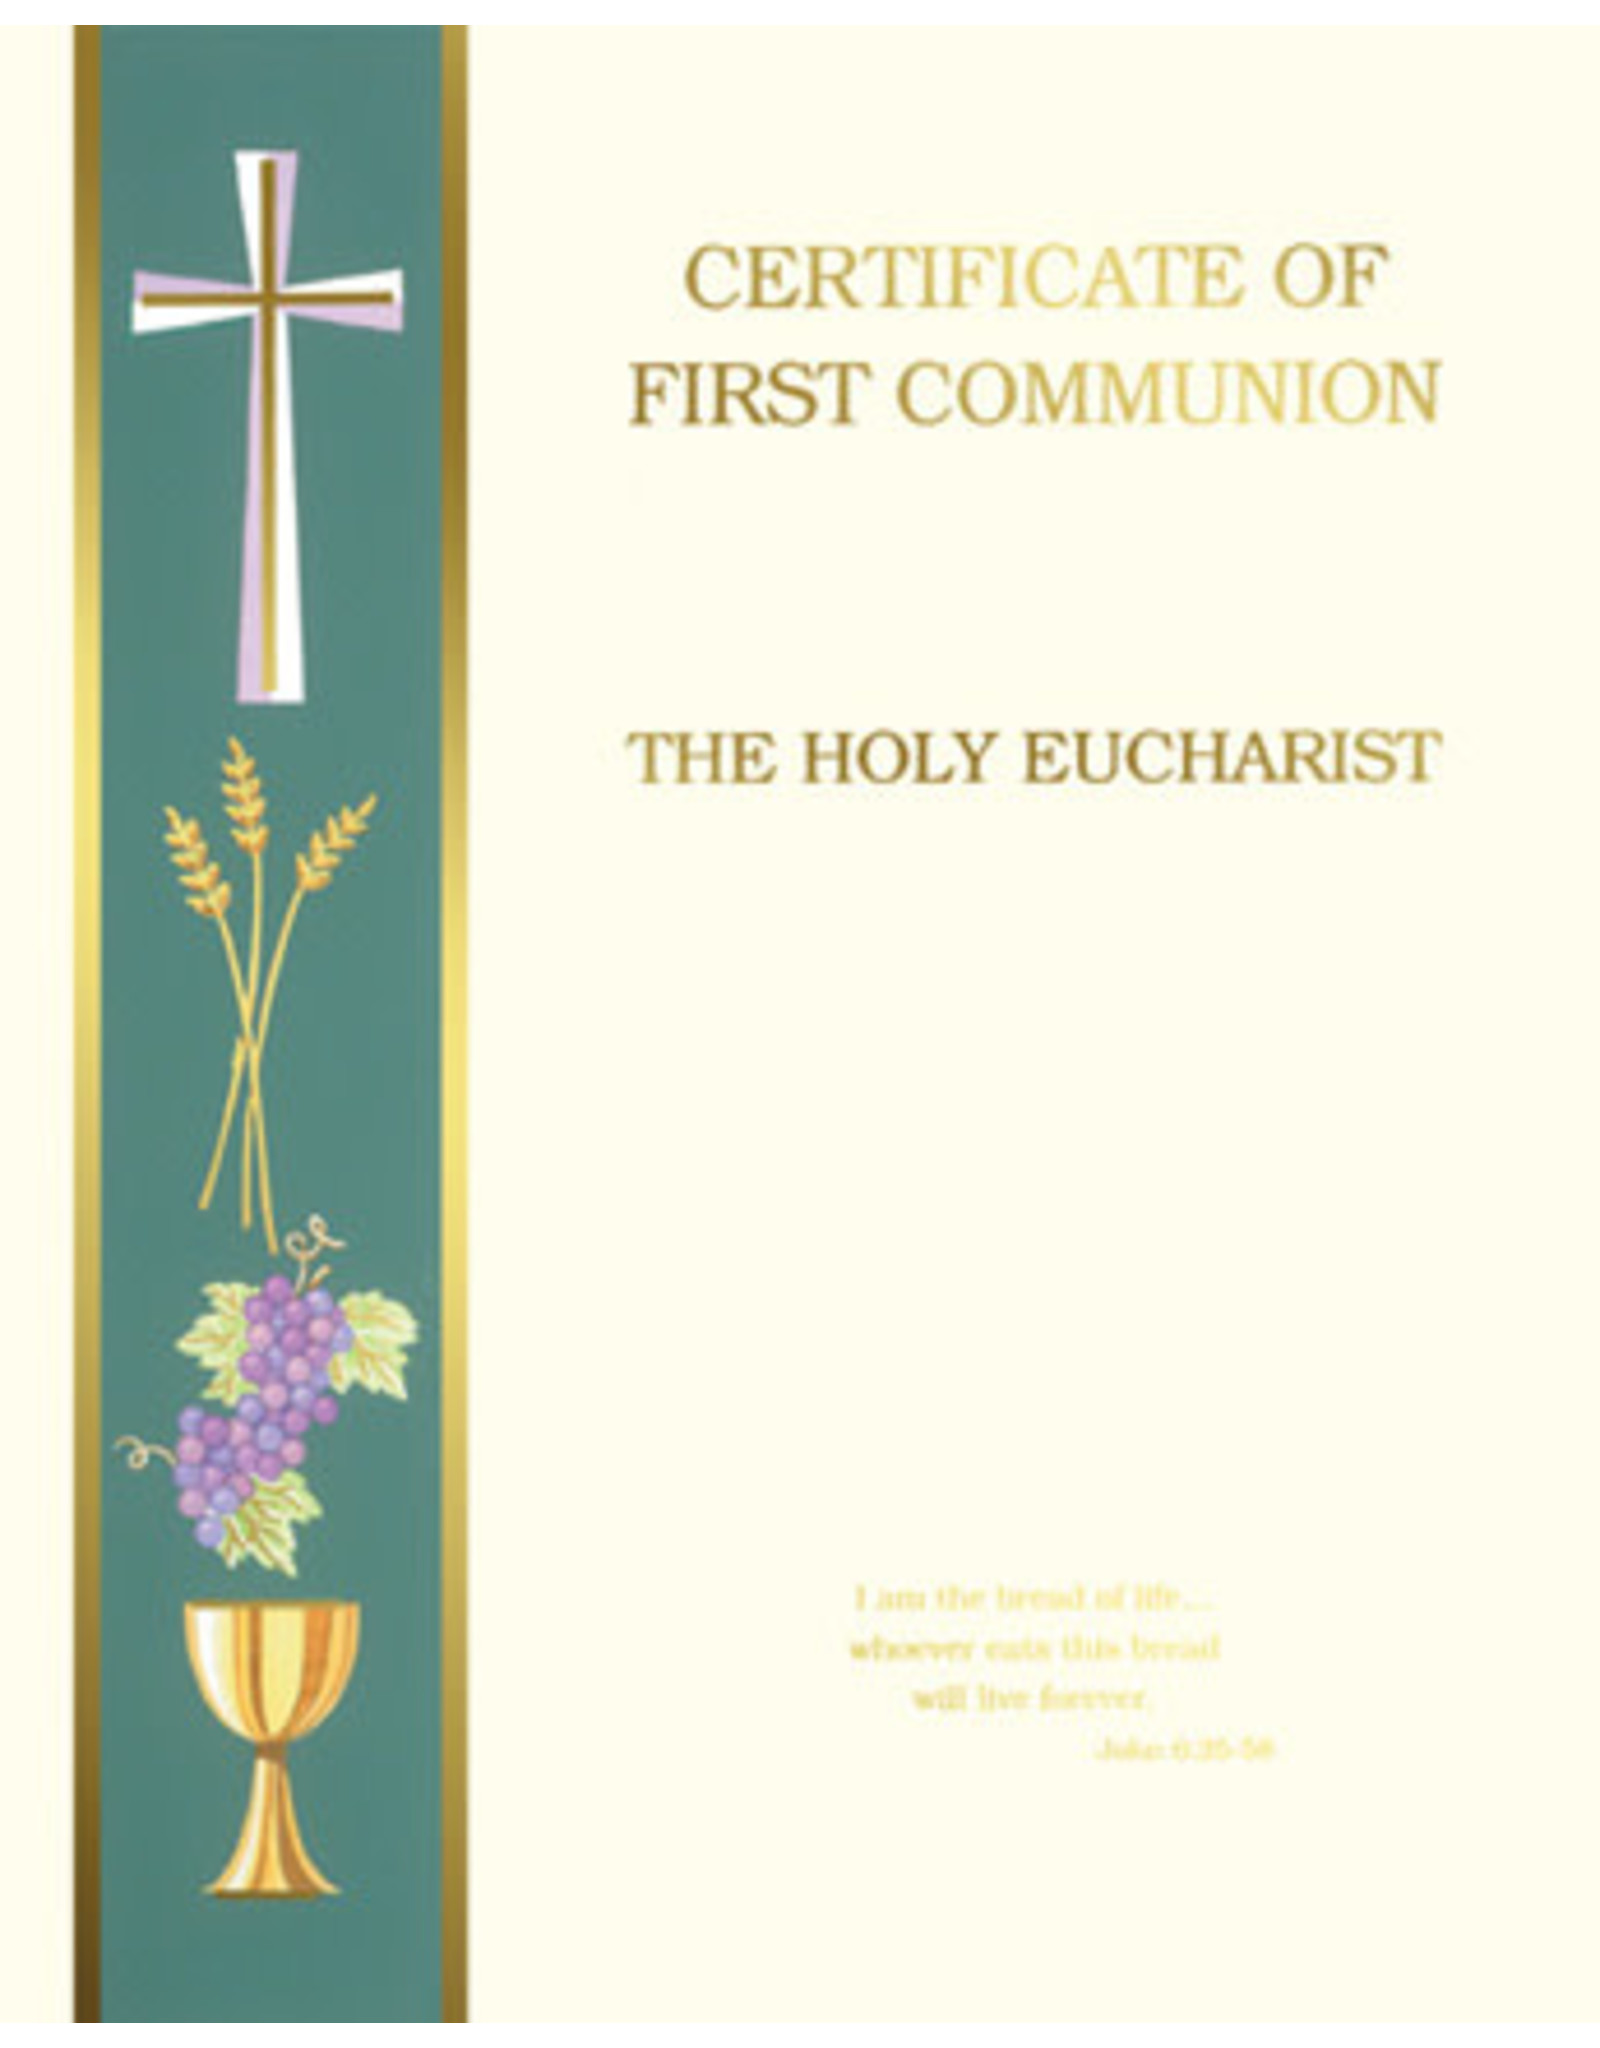 First Communion Certificate Create-Your-Own (50)